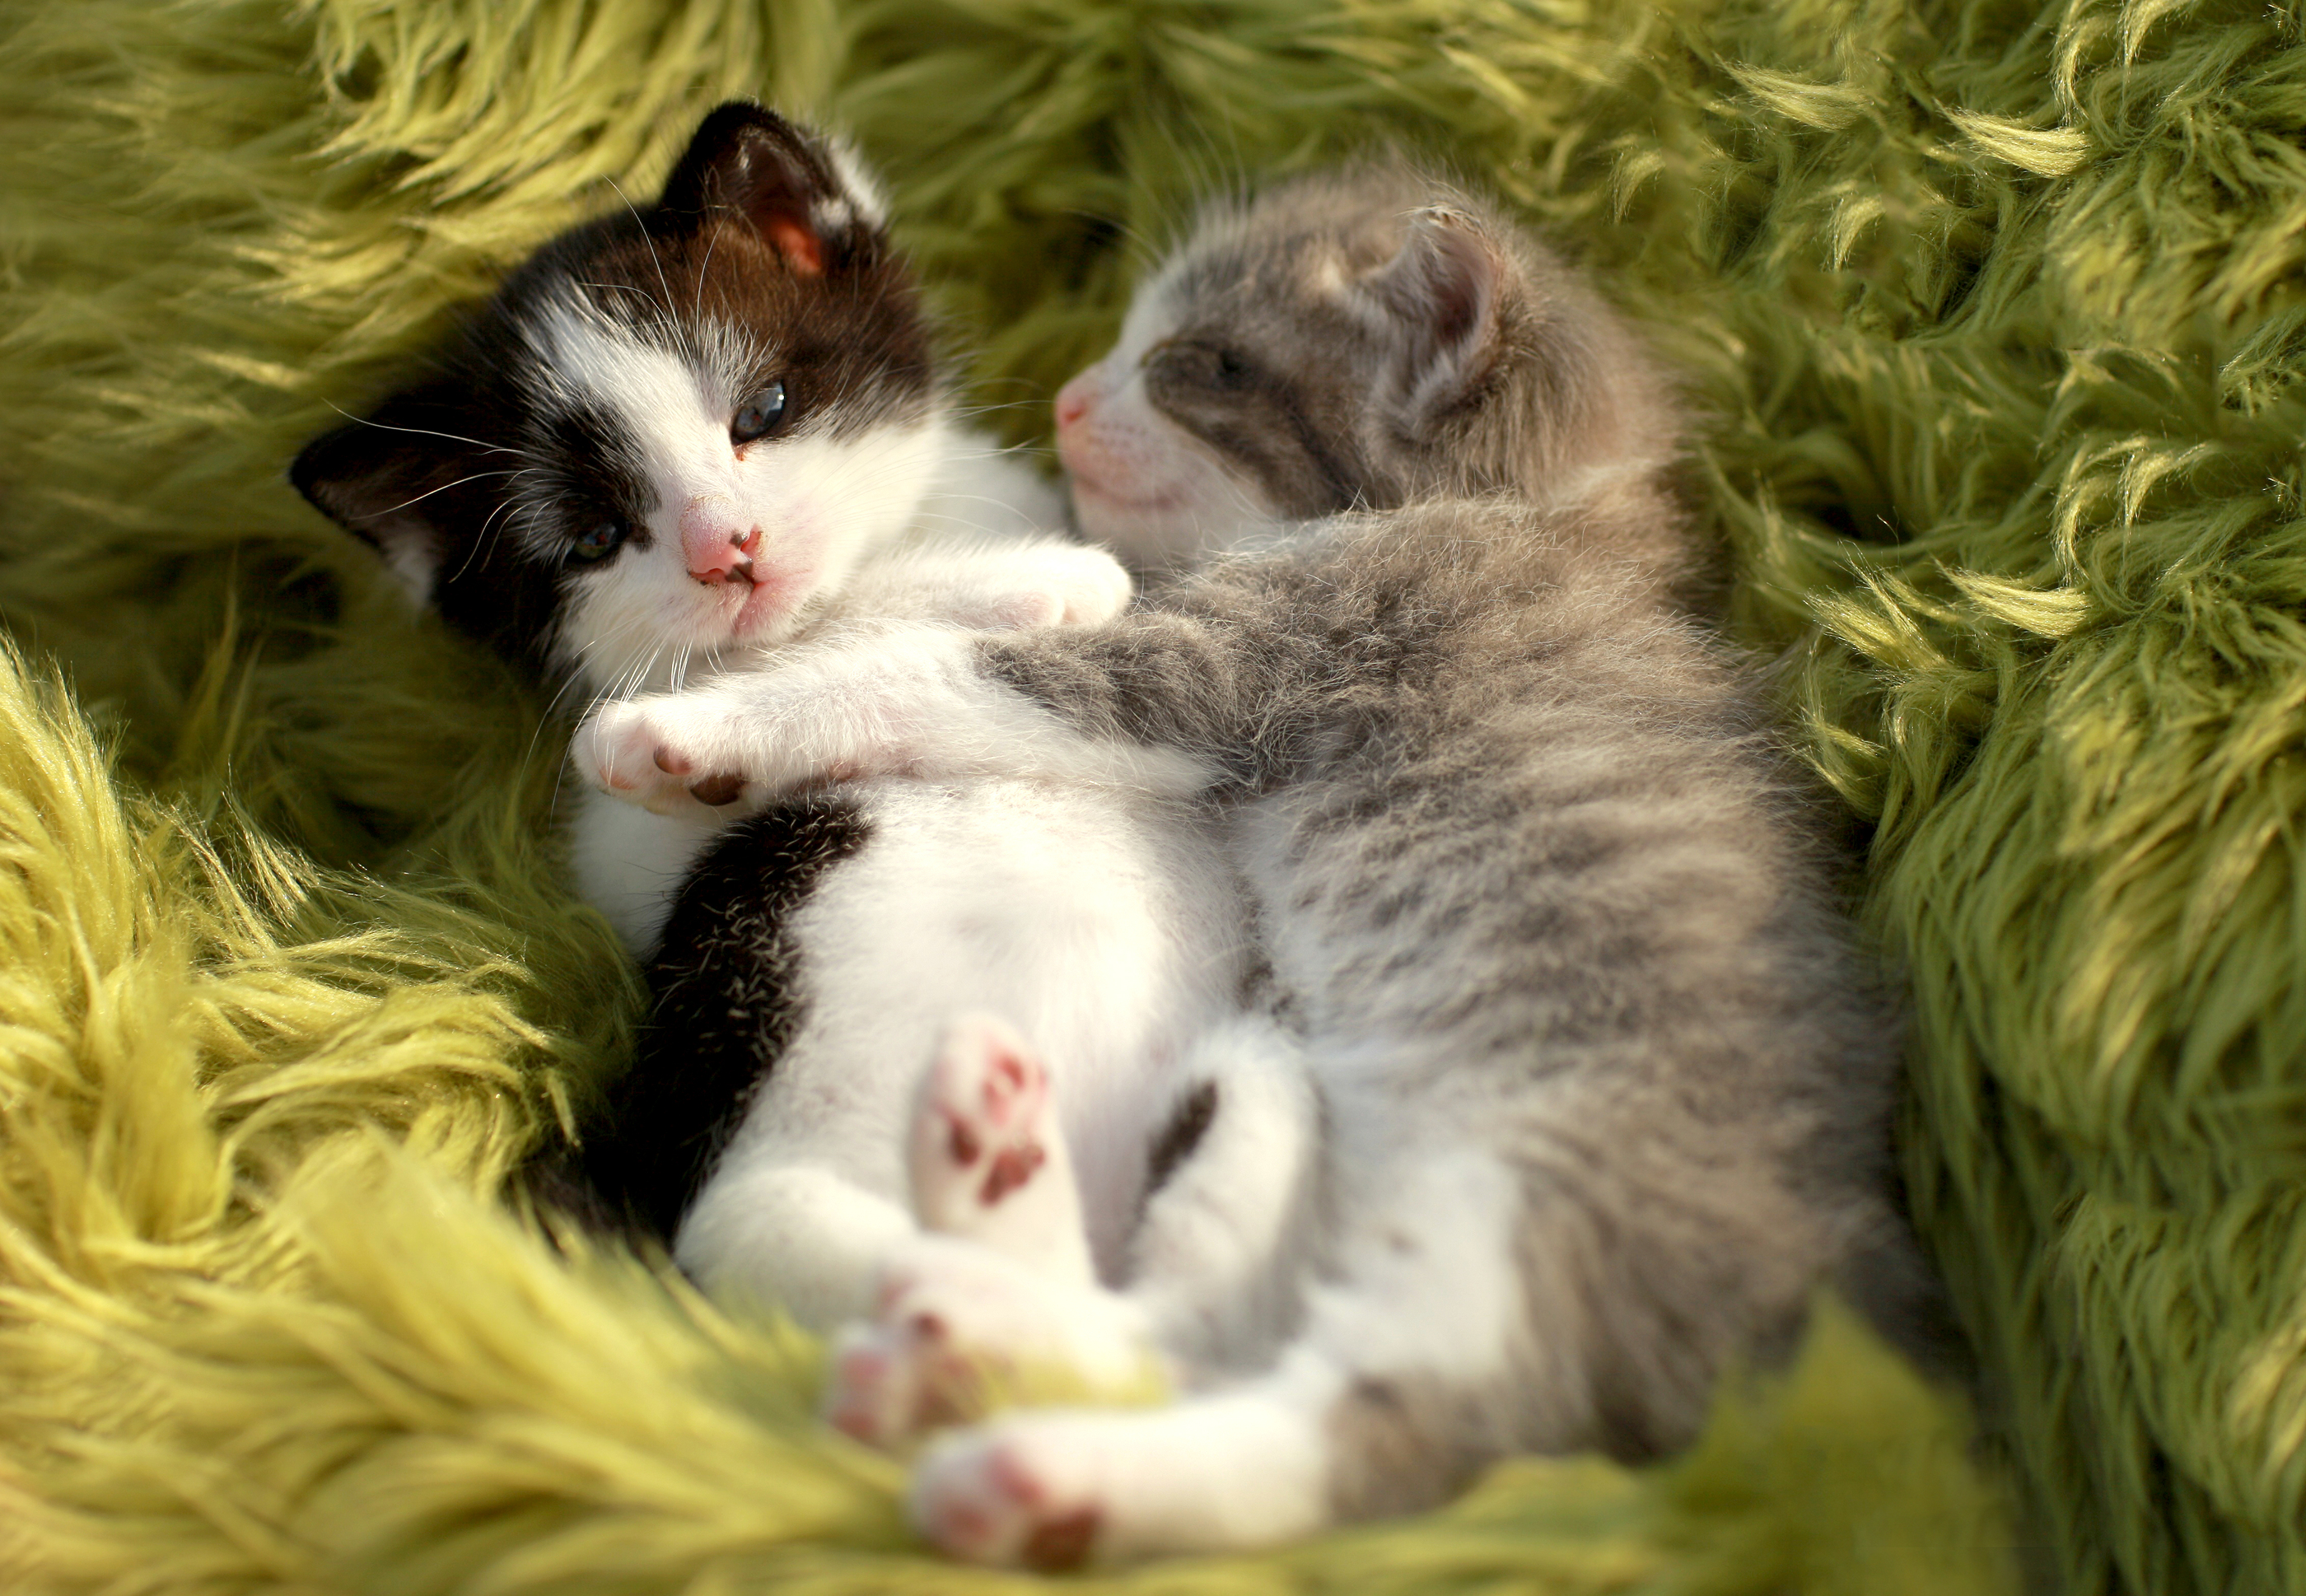 Cute Baby Sleeping Wallpapers Kittens In A Box Accidentally Shipped From Los Angeles To